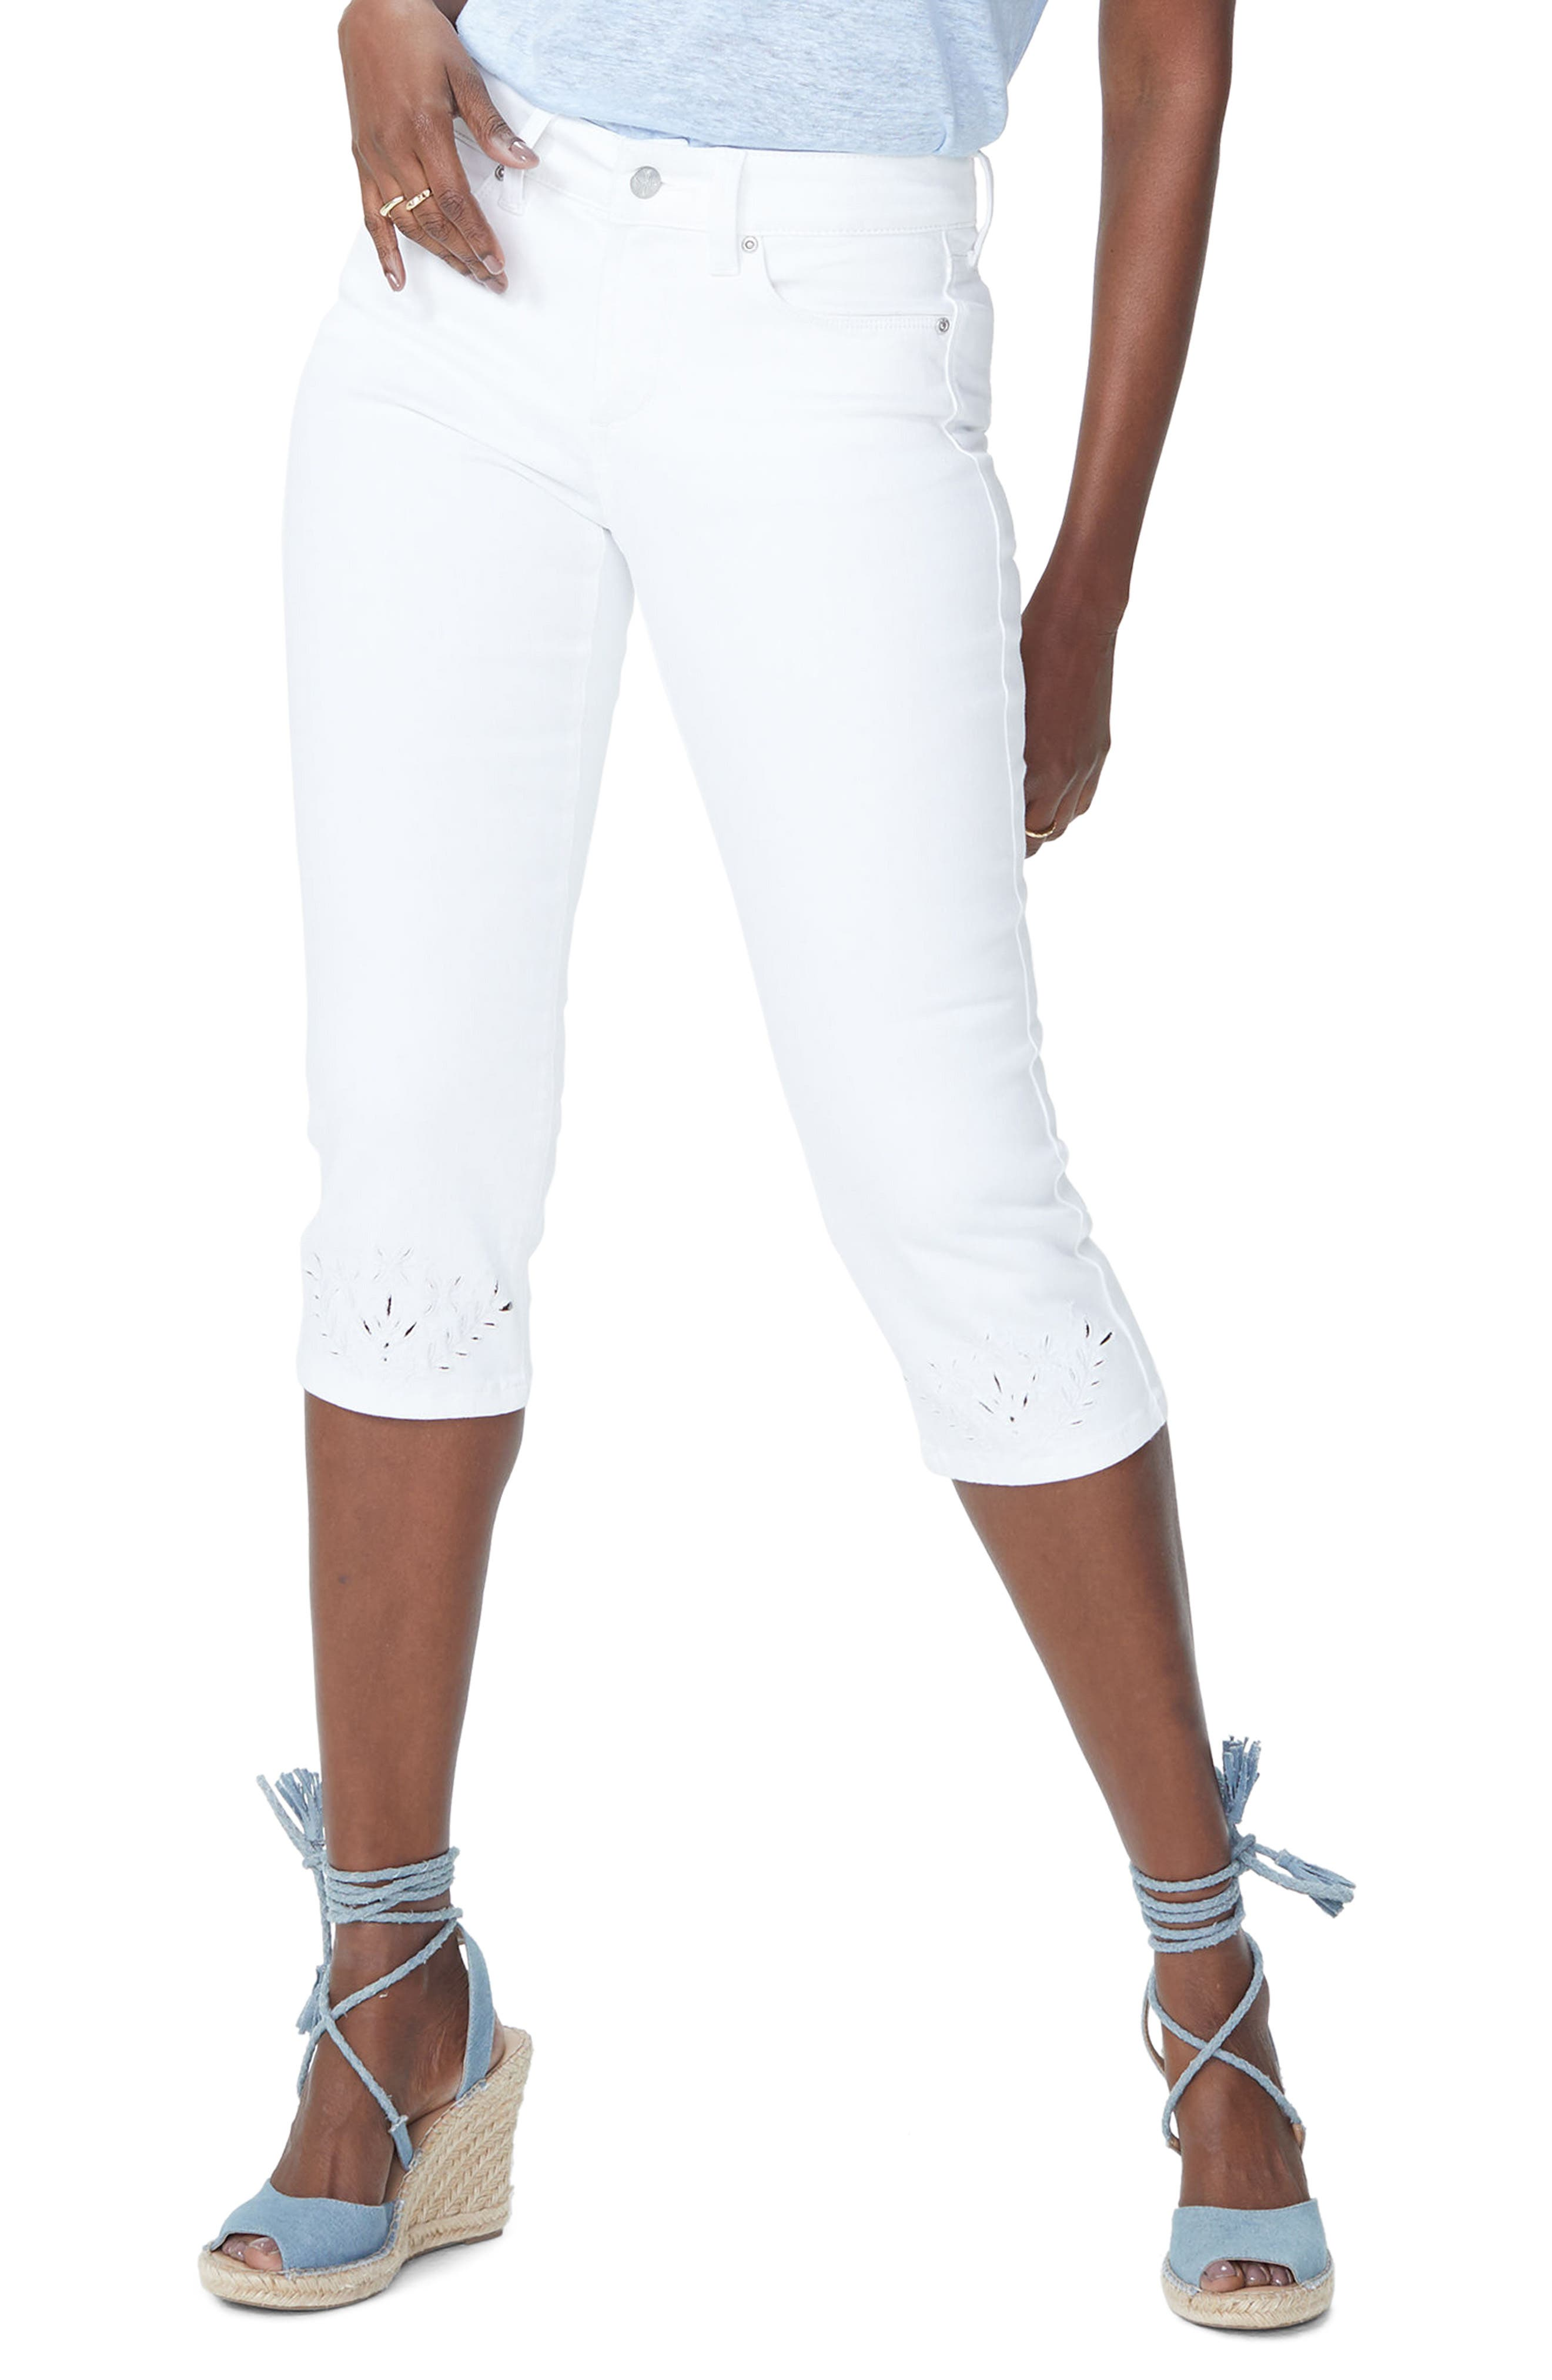 Marilyn Eyelet Hem Stretch Crop Jeans,                             Main thumbnail 1, color,                             Optic White